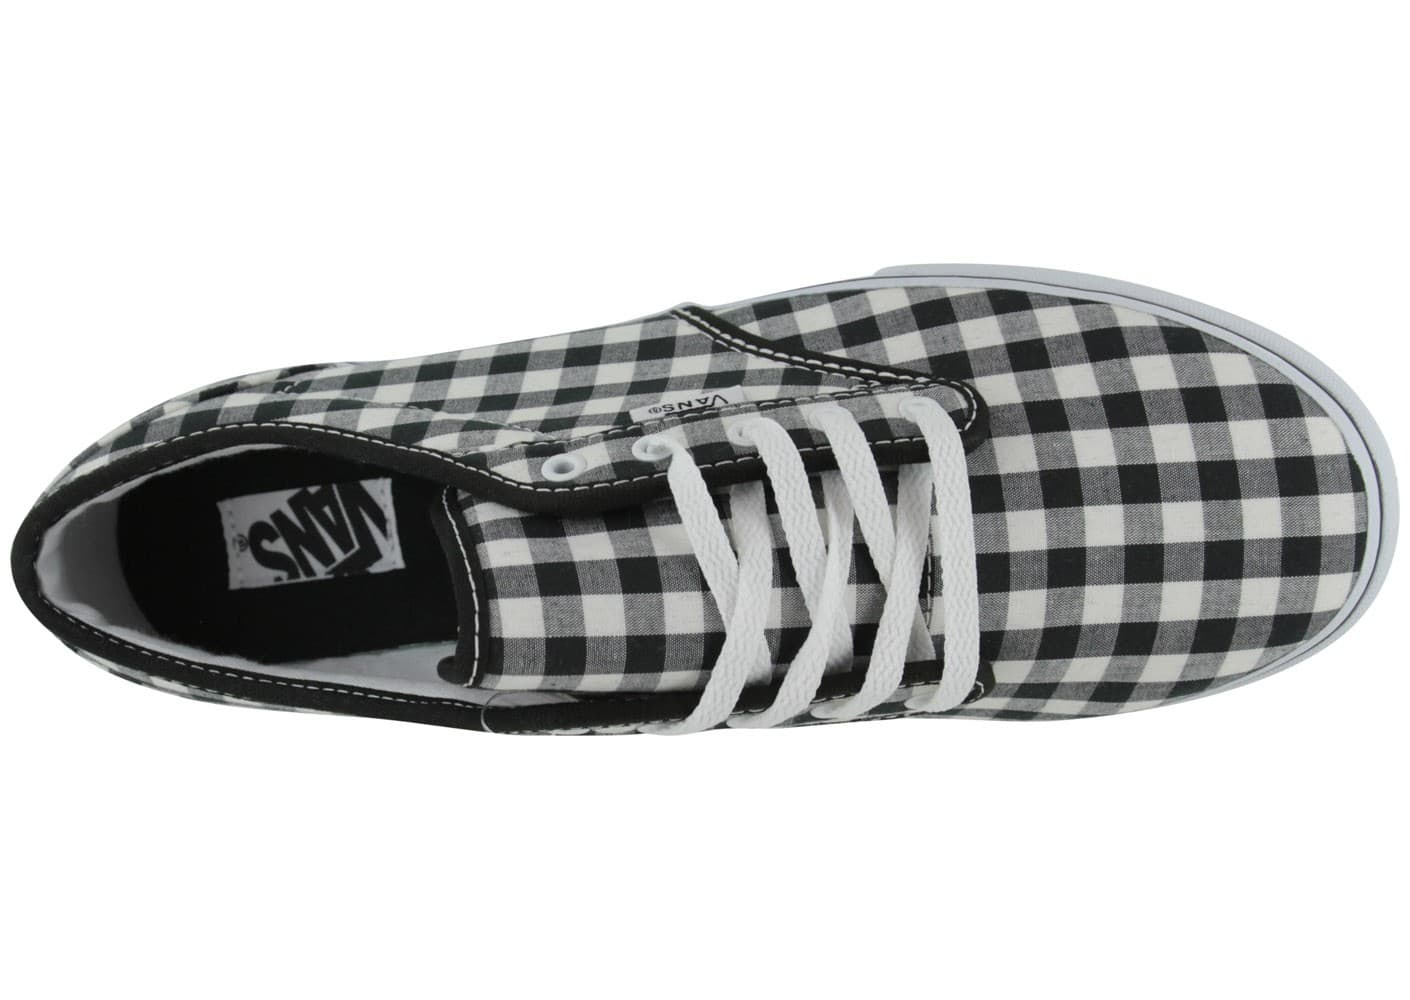 Atwood Chausport Vans Vichy Noire Chaussures rdCeWxBo